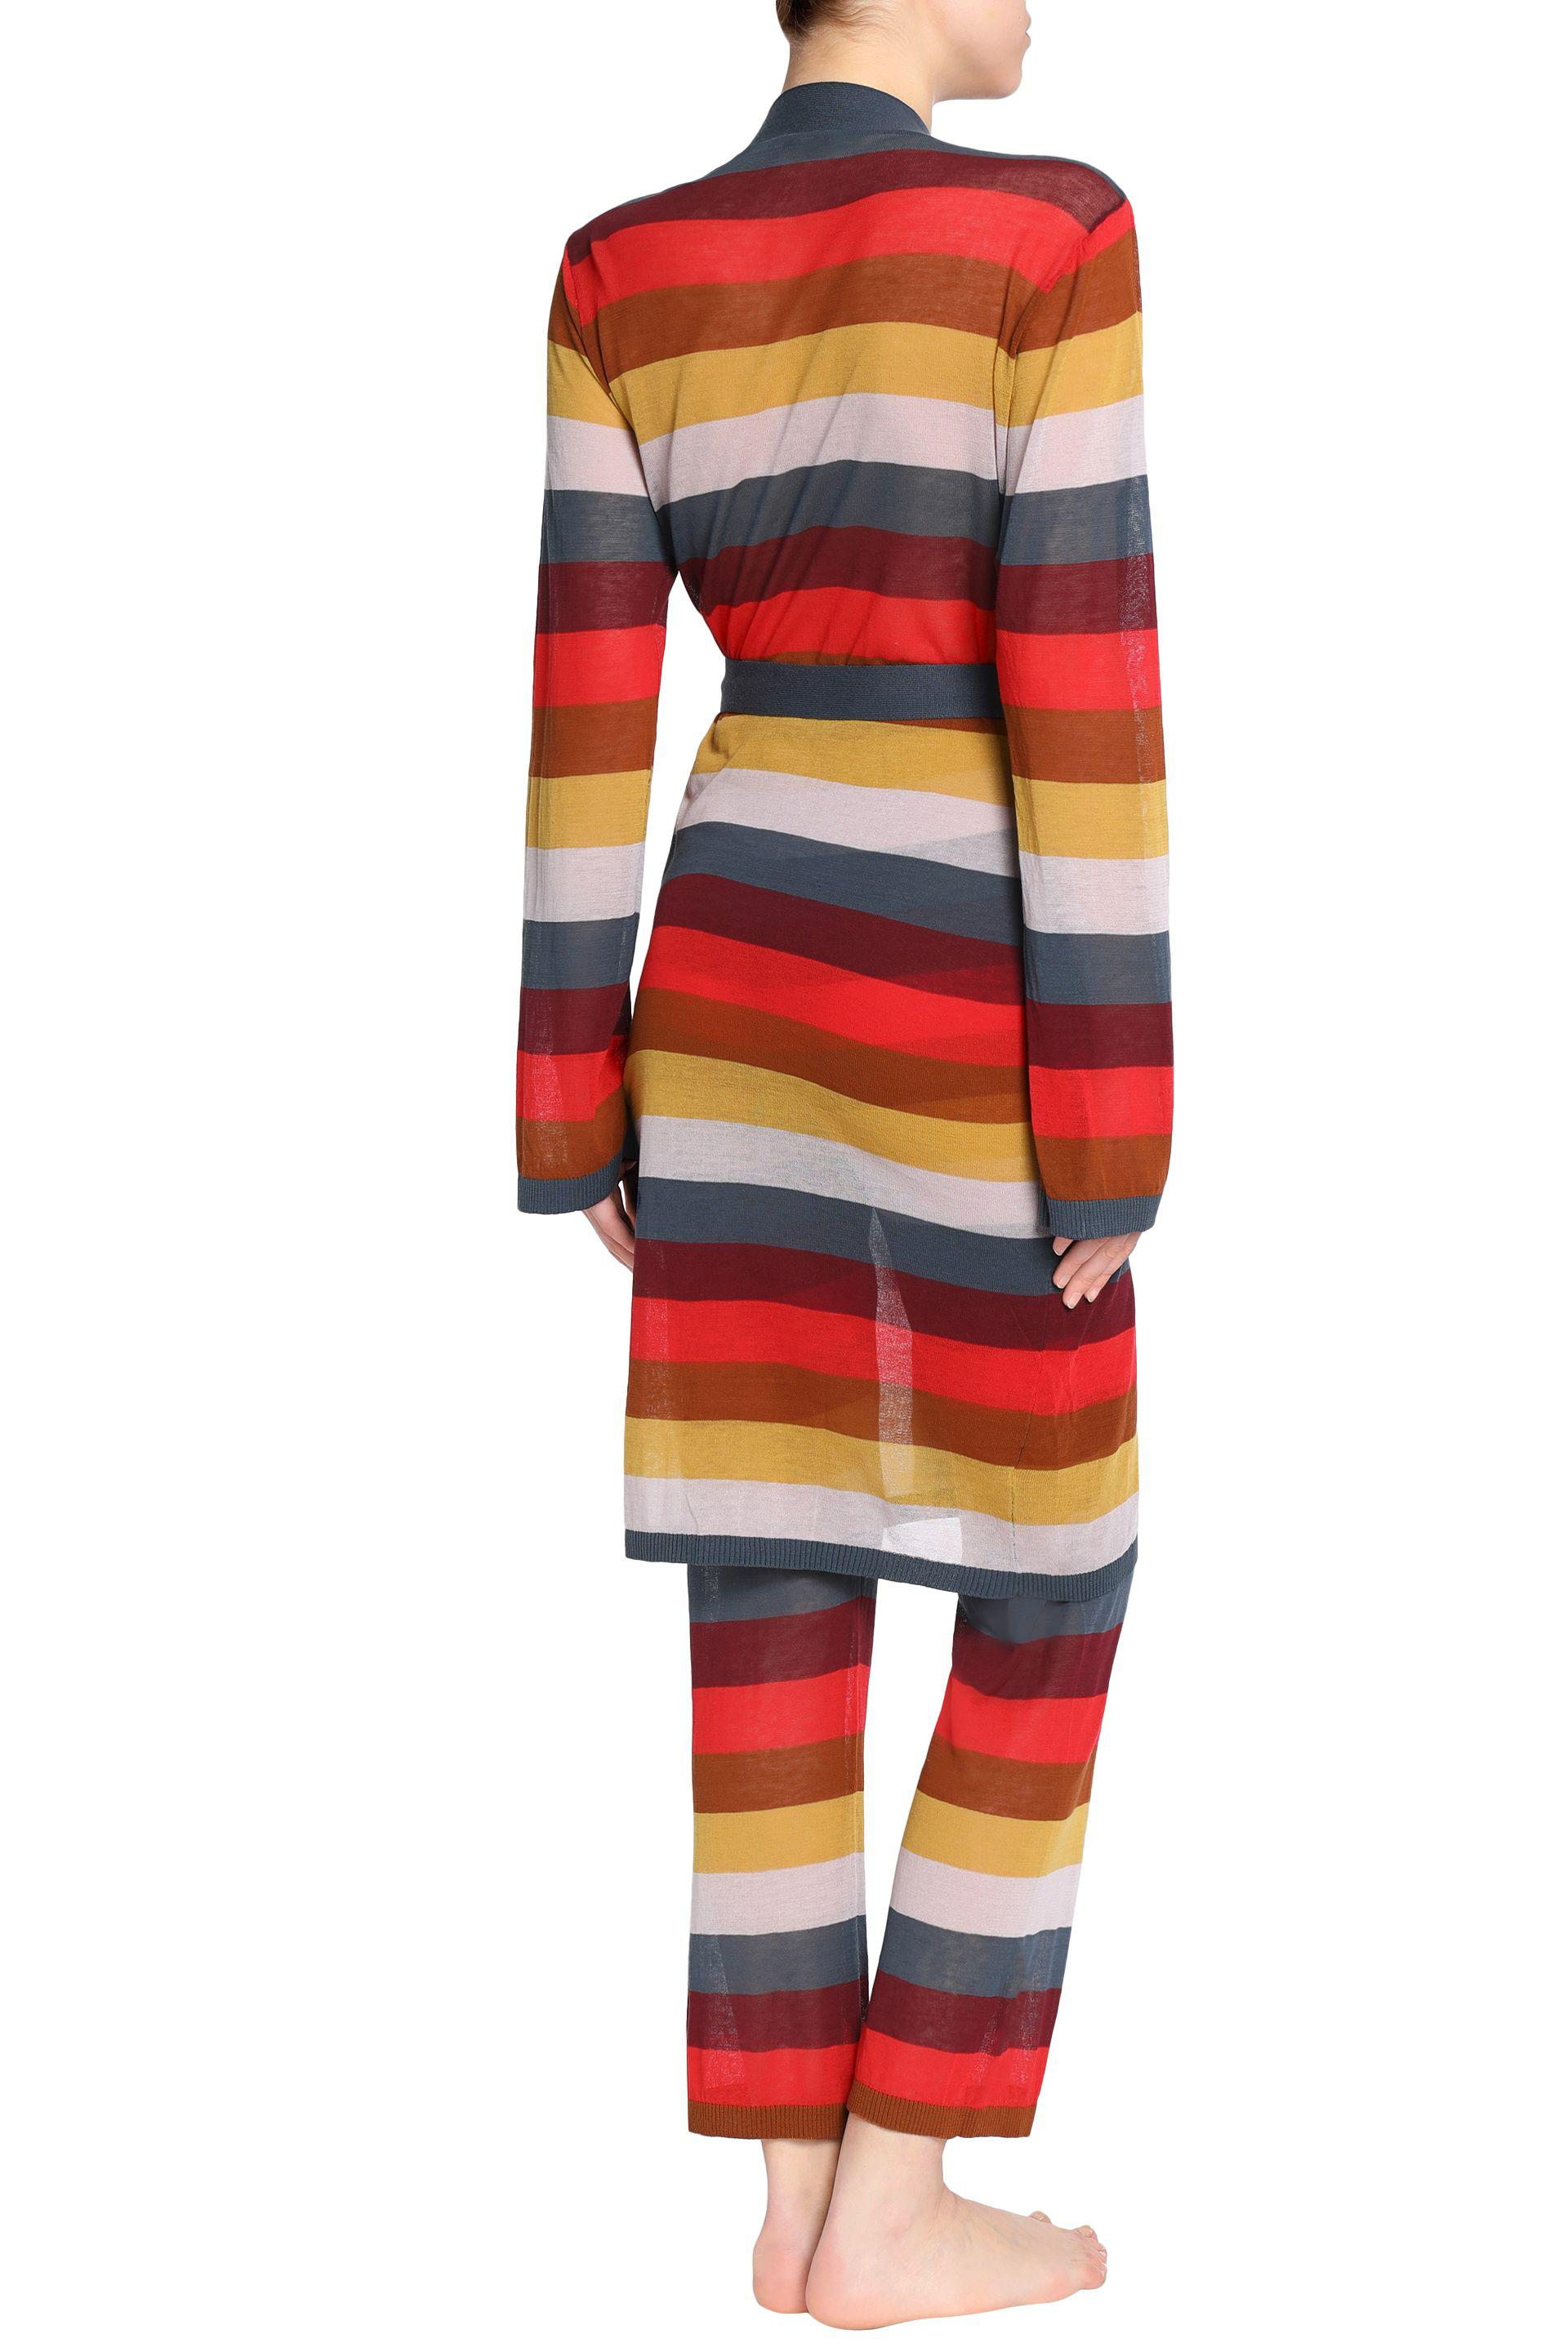 Cheap Outlet Cheap Sale 2018 New Love Stories Woman Striped Cotton-blend Pajama Pants Multicolor Size XL Love Stories Cheap Discount Authentic Buy Cheap Great Deals Buy Cheap Excellent VyRGgV